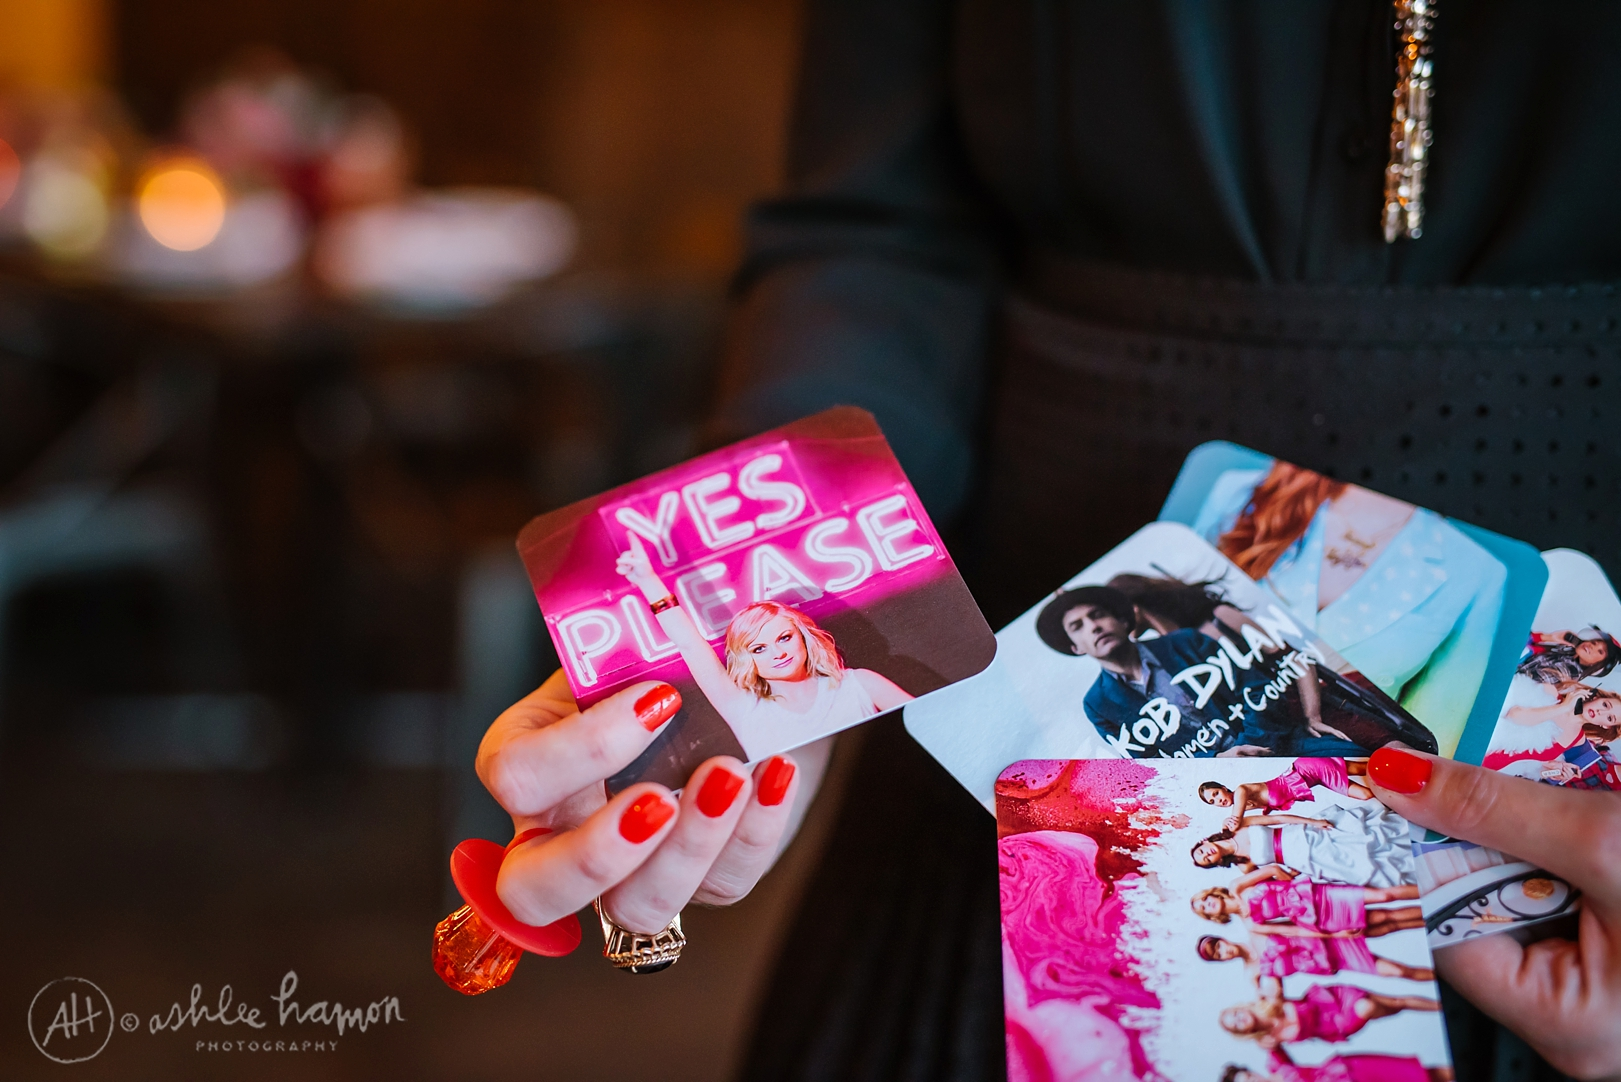 tampa-event-photographer-styled-party-ideas-oh-hello_0009.jpg